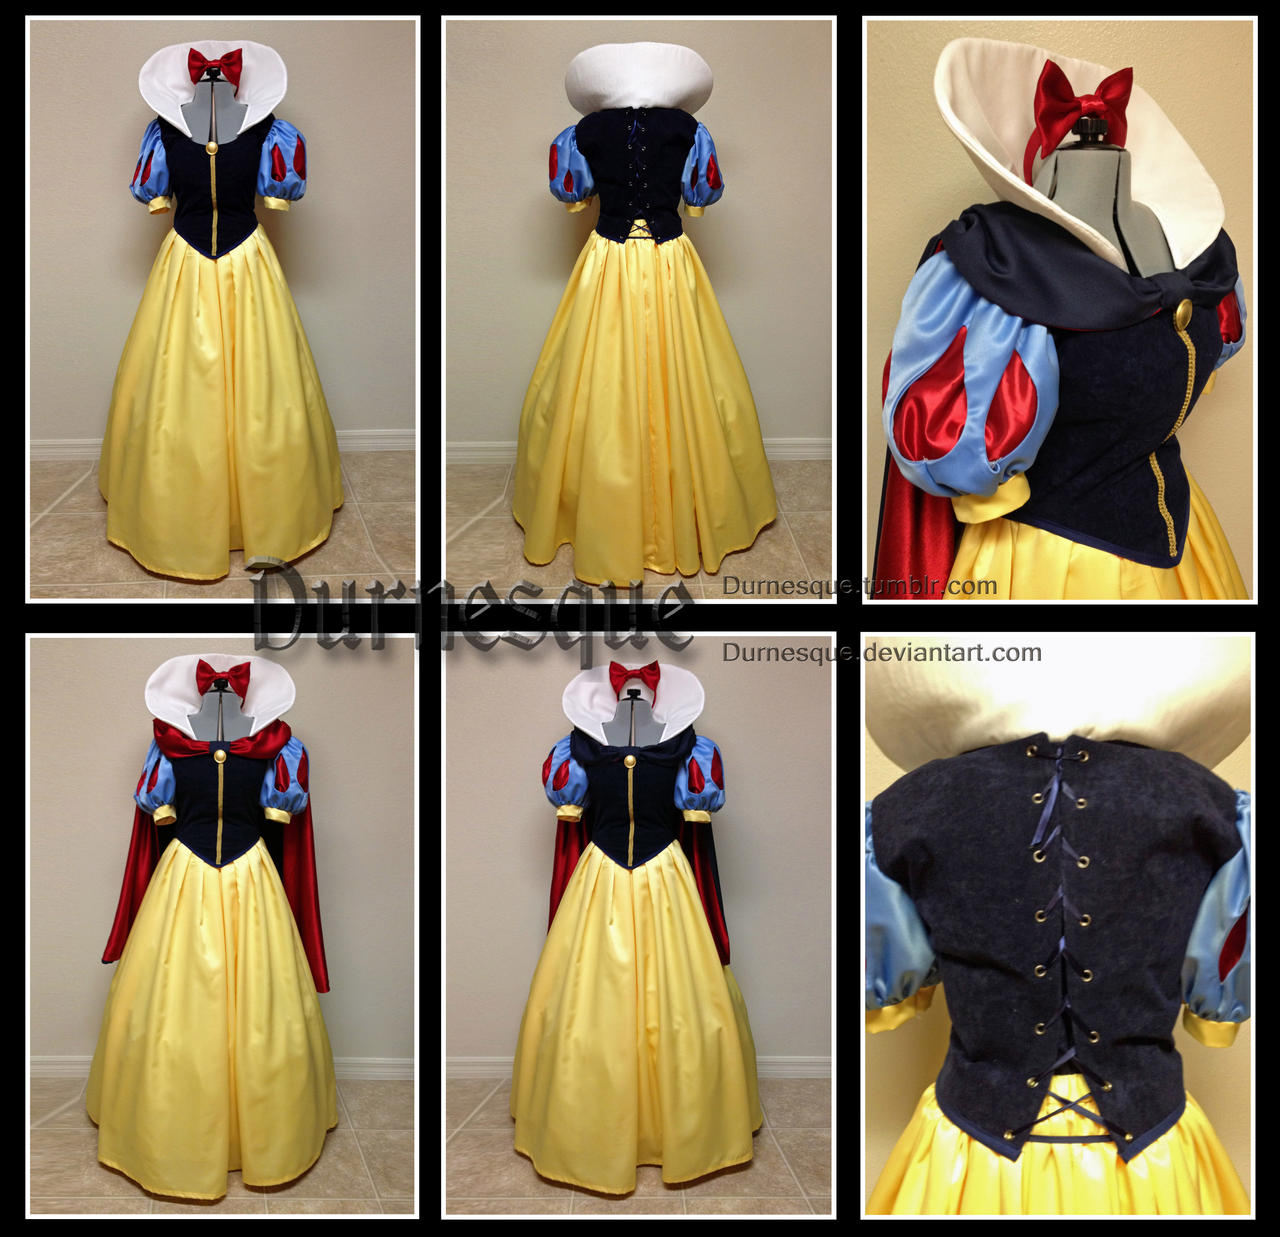 Snow White with Reversible Cape by Durnesque